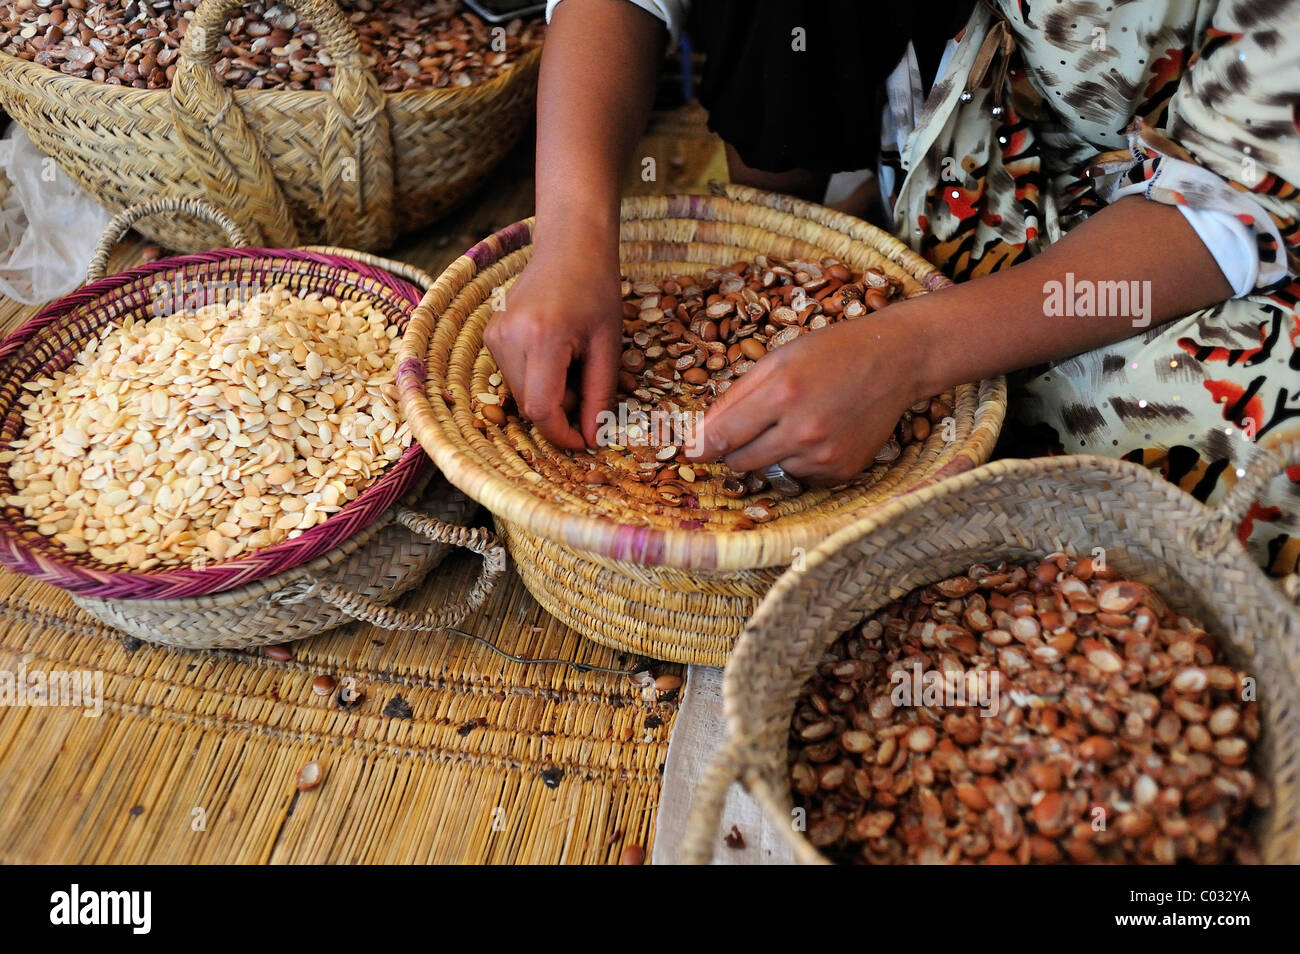 A woman sorting Argan seeds out of a bowl to press to gain Argan oil, South Morocco, Morocco, Africa - Stock Image